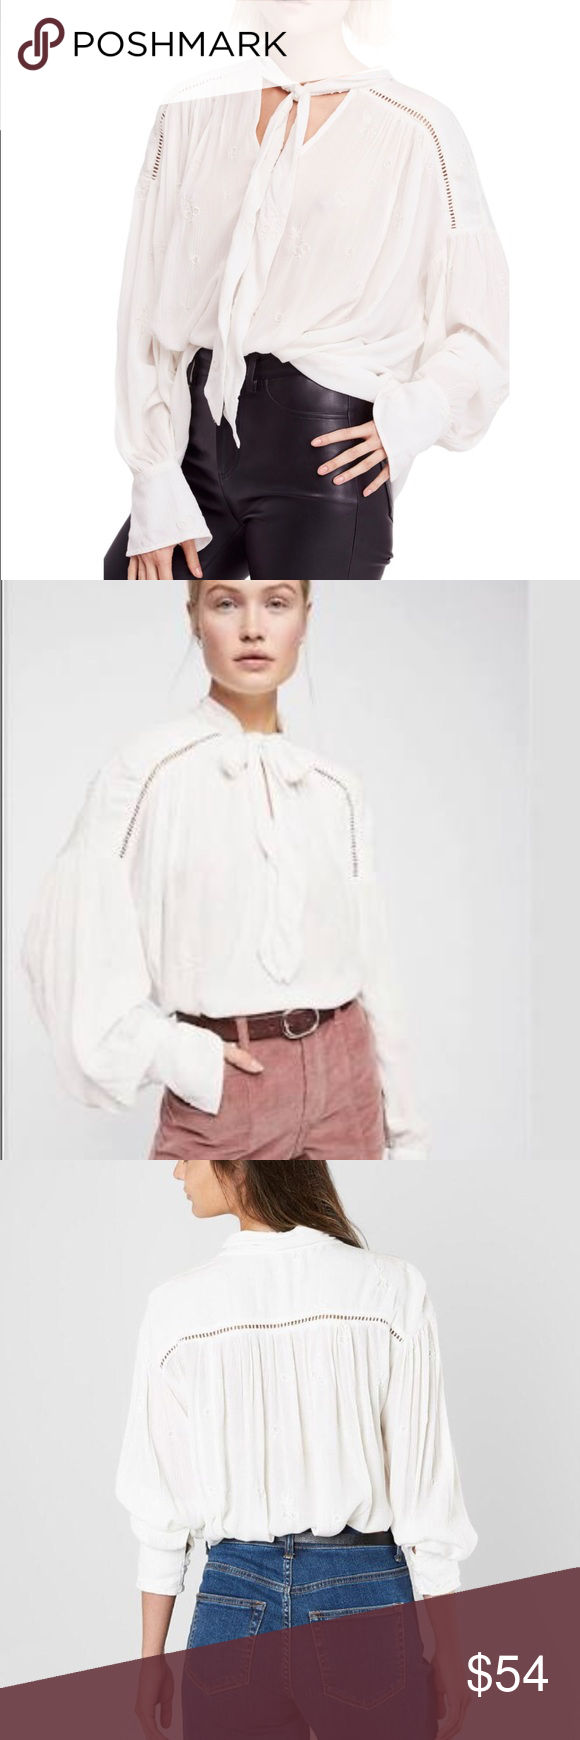 eee46e03b50a52 NWT Free People Wishful Moments Tie Neck Top L Free People modern boho glam  in this